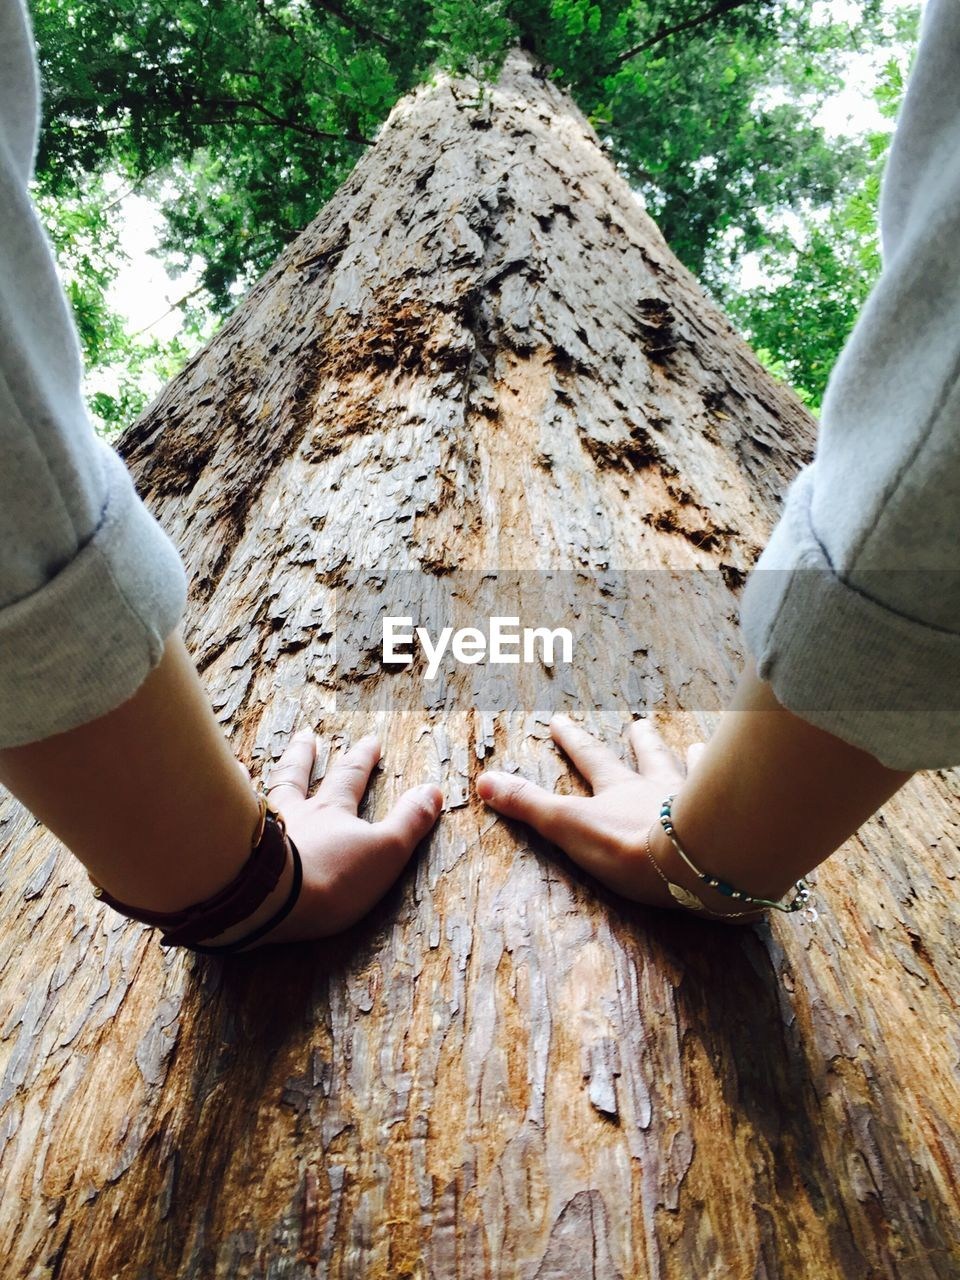 real people, human hand, two people, leisure activity, day, tree trunk, togetherness, tree, human body part, outdoors, lifestyles, wood - material, men, women, nature, friendship, childhood, bonding, close-up, people